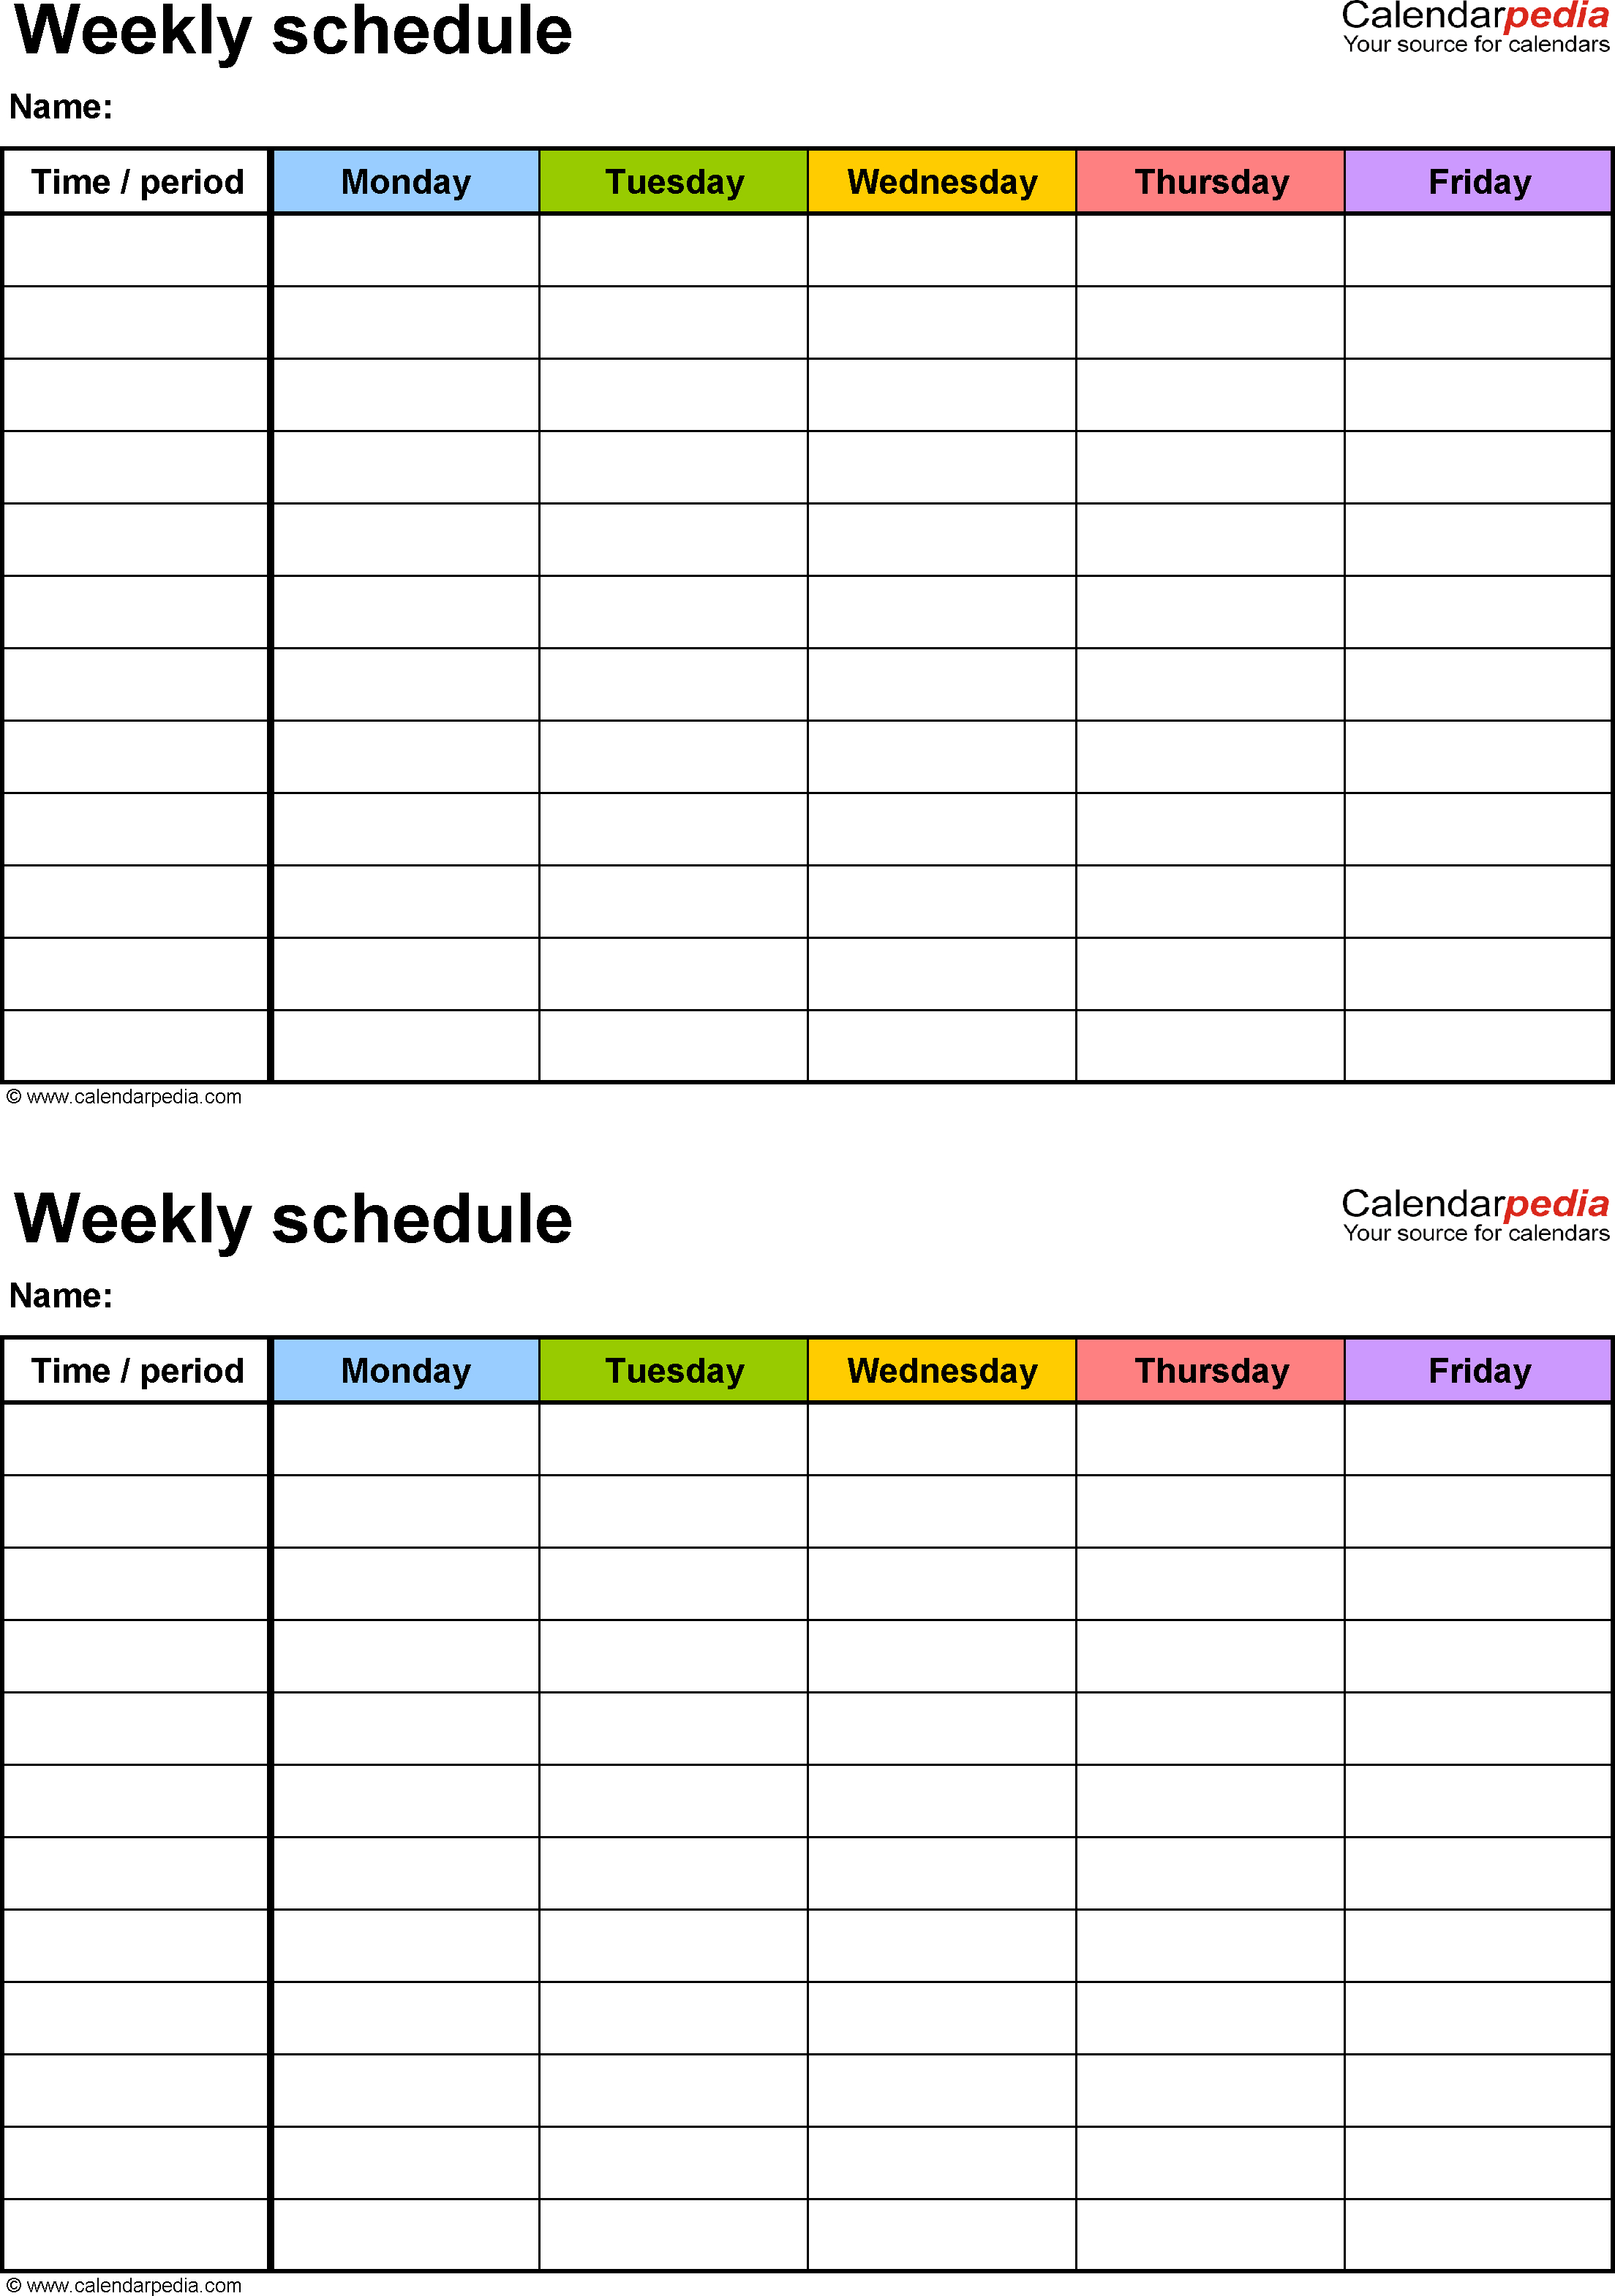 Weekly Schedule Template For Excel Version 3: 2 Schedules On One in Blank 5 Day School Timetable